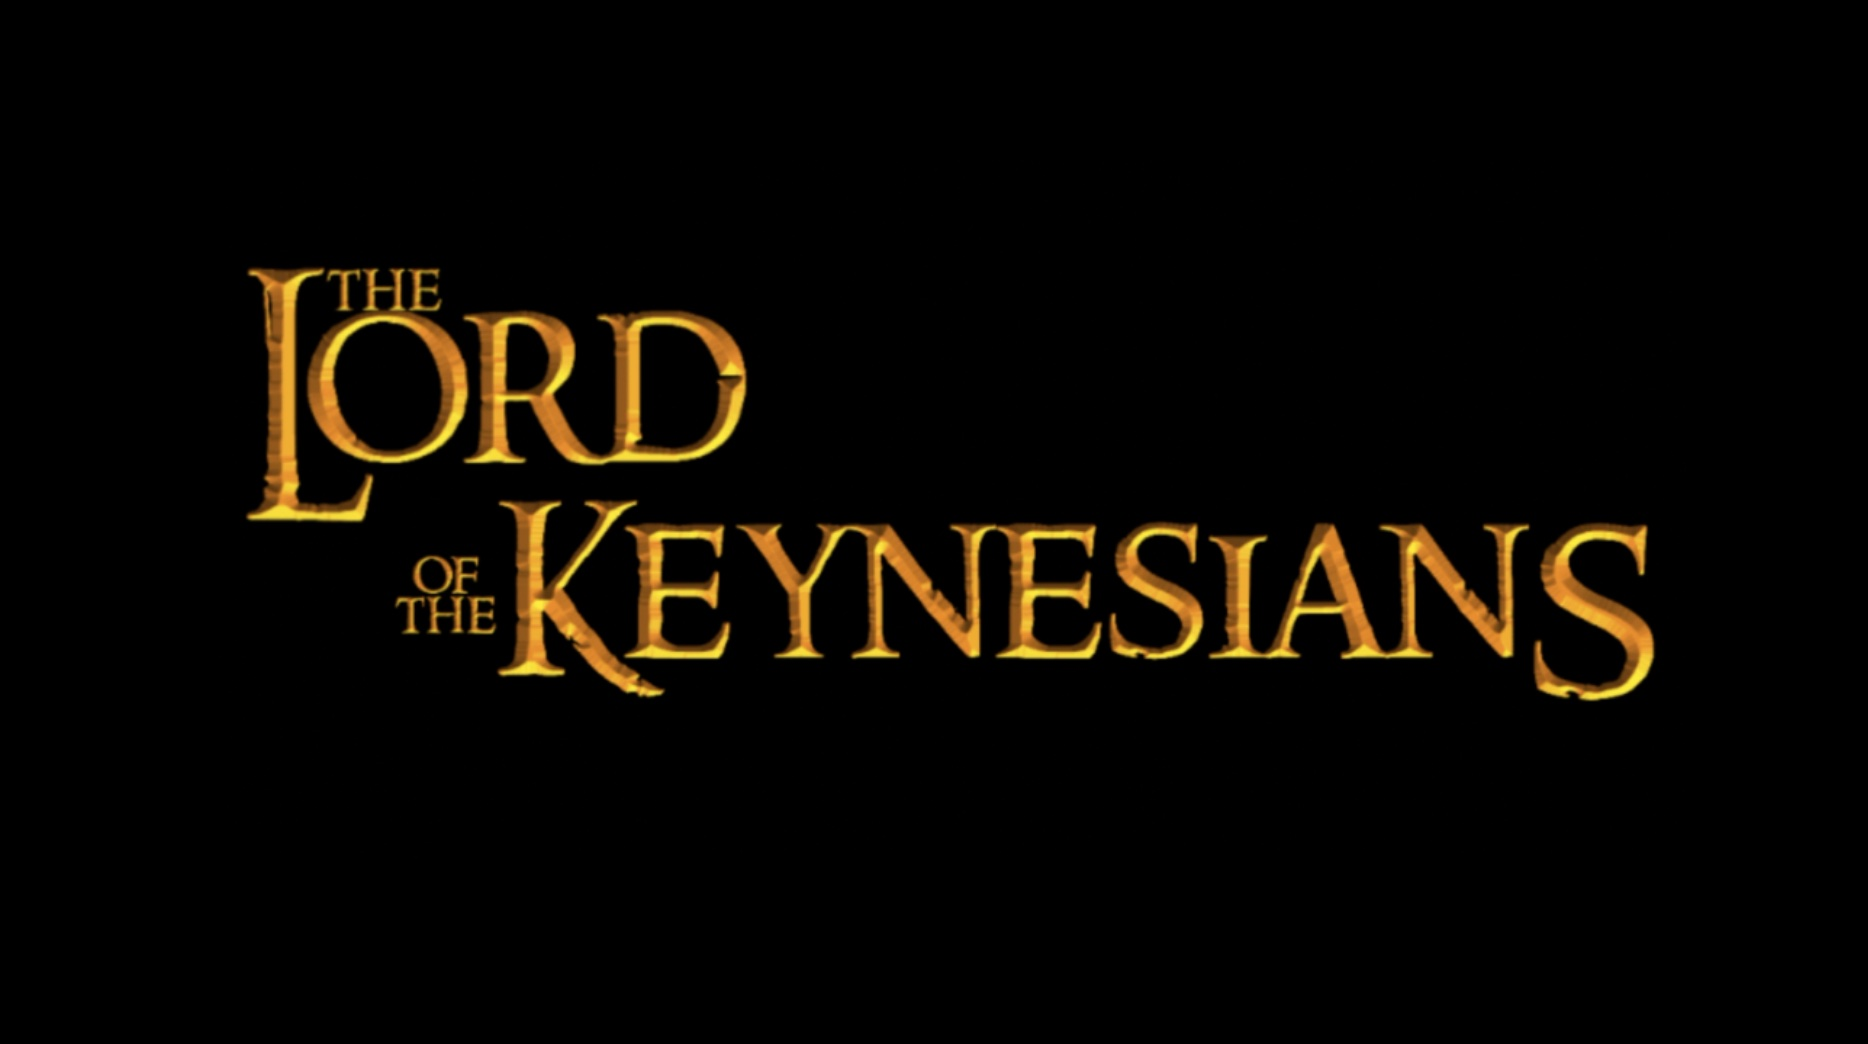 The Lord of the Keynesians